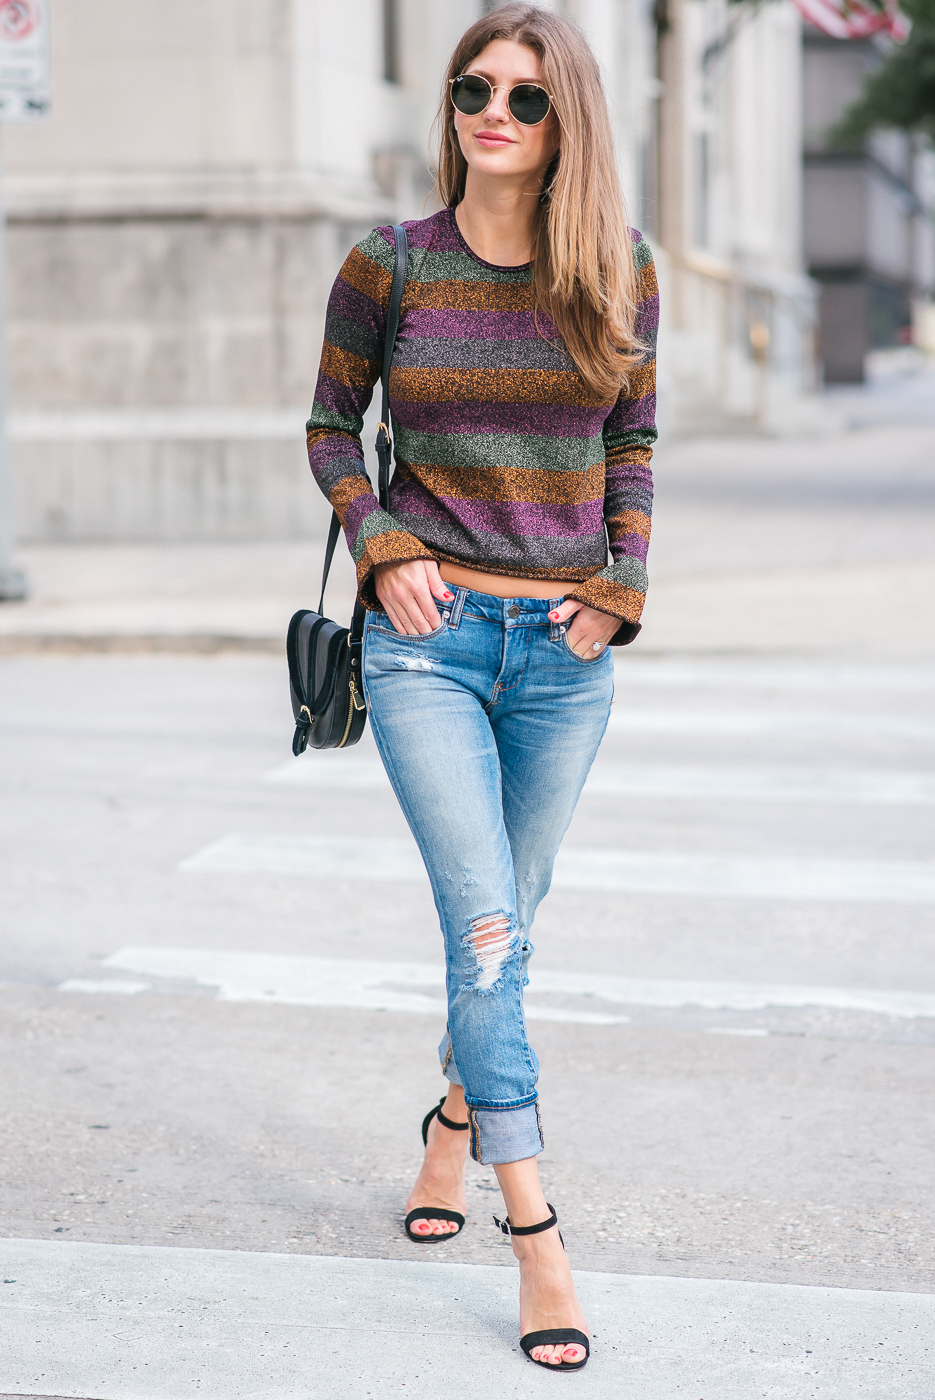 Street Style look in Stuart Weitzman shoes and metallic top